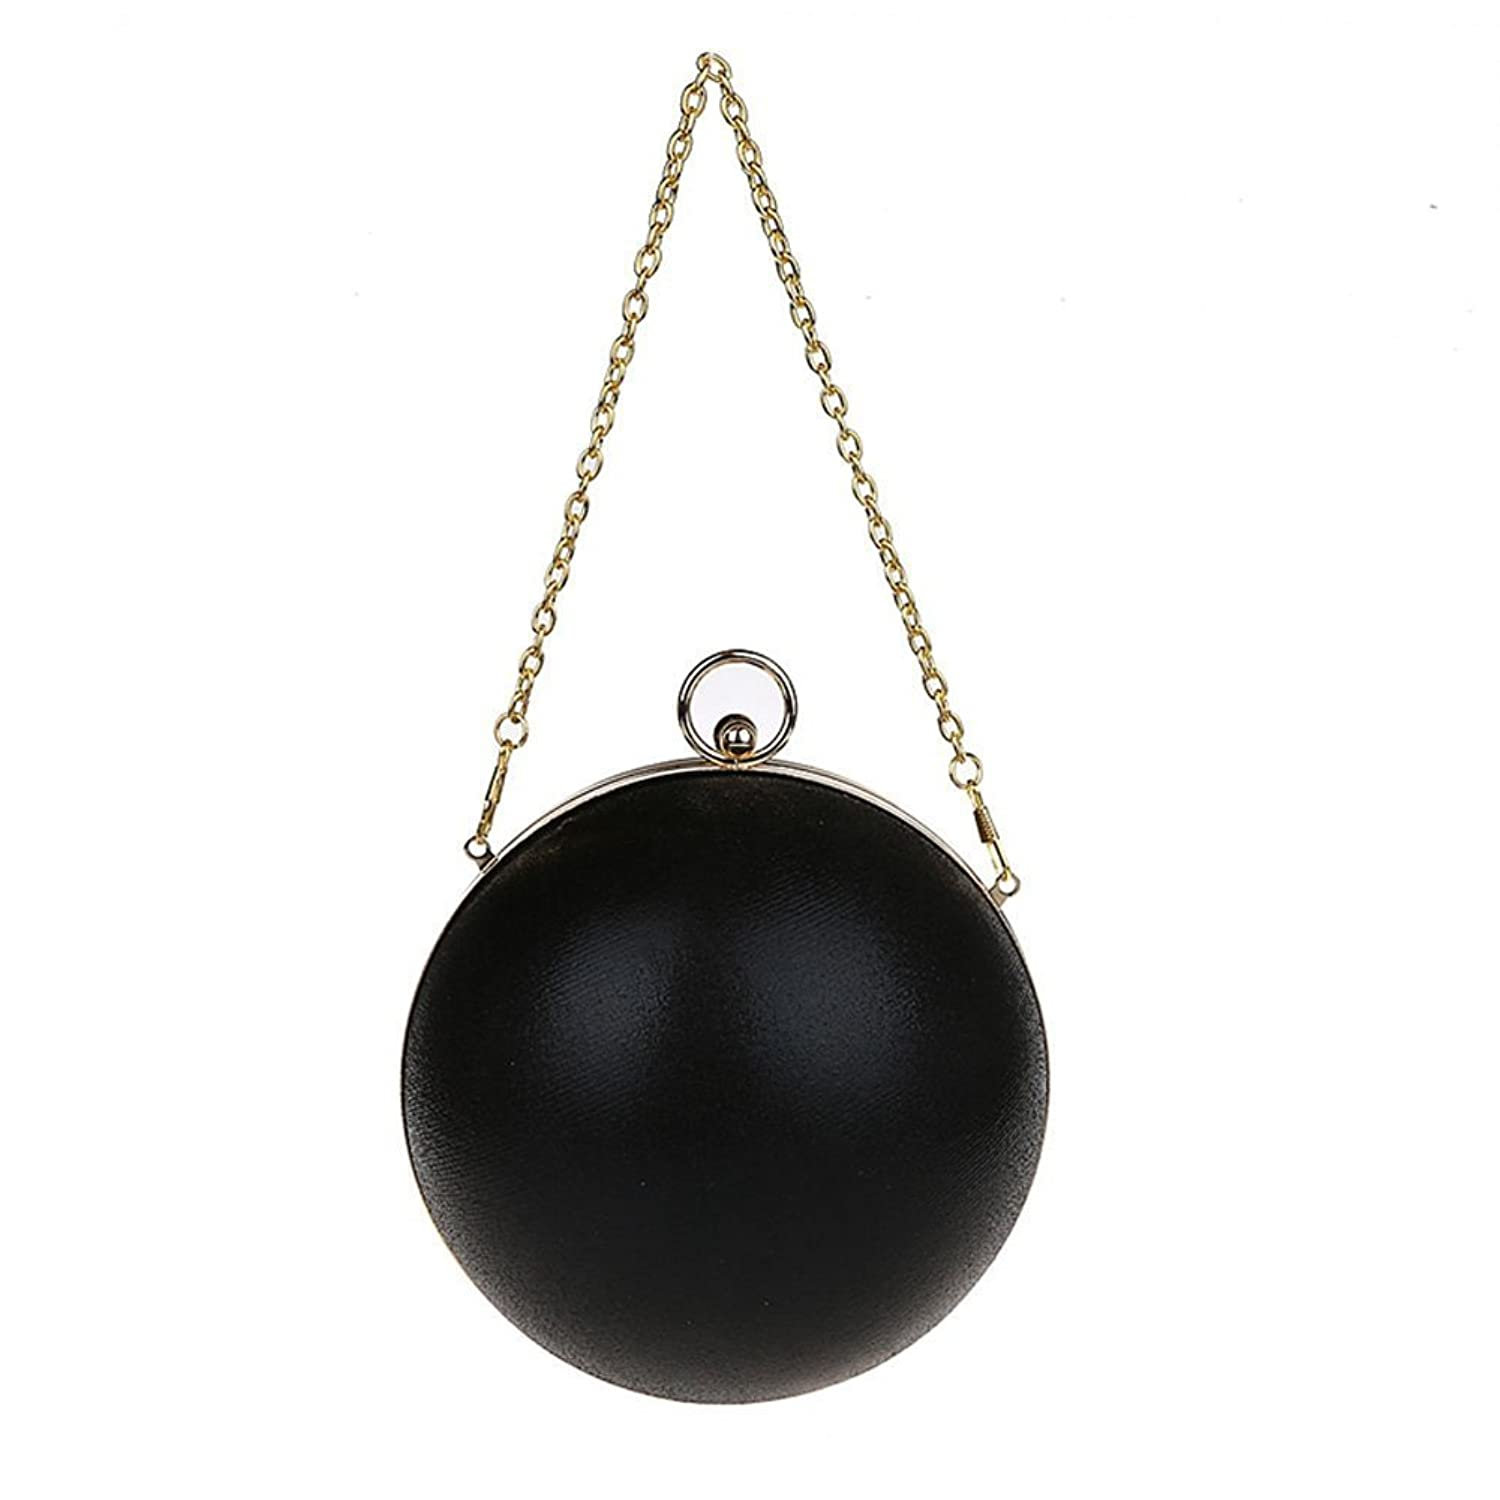 YOUAREFACNY Women's Fashion Round Ball Chain Small Prom Handbag